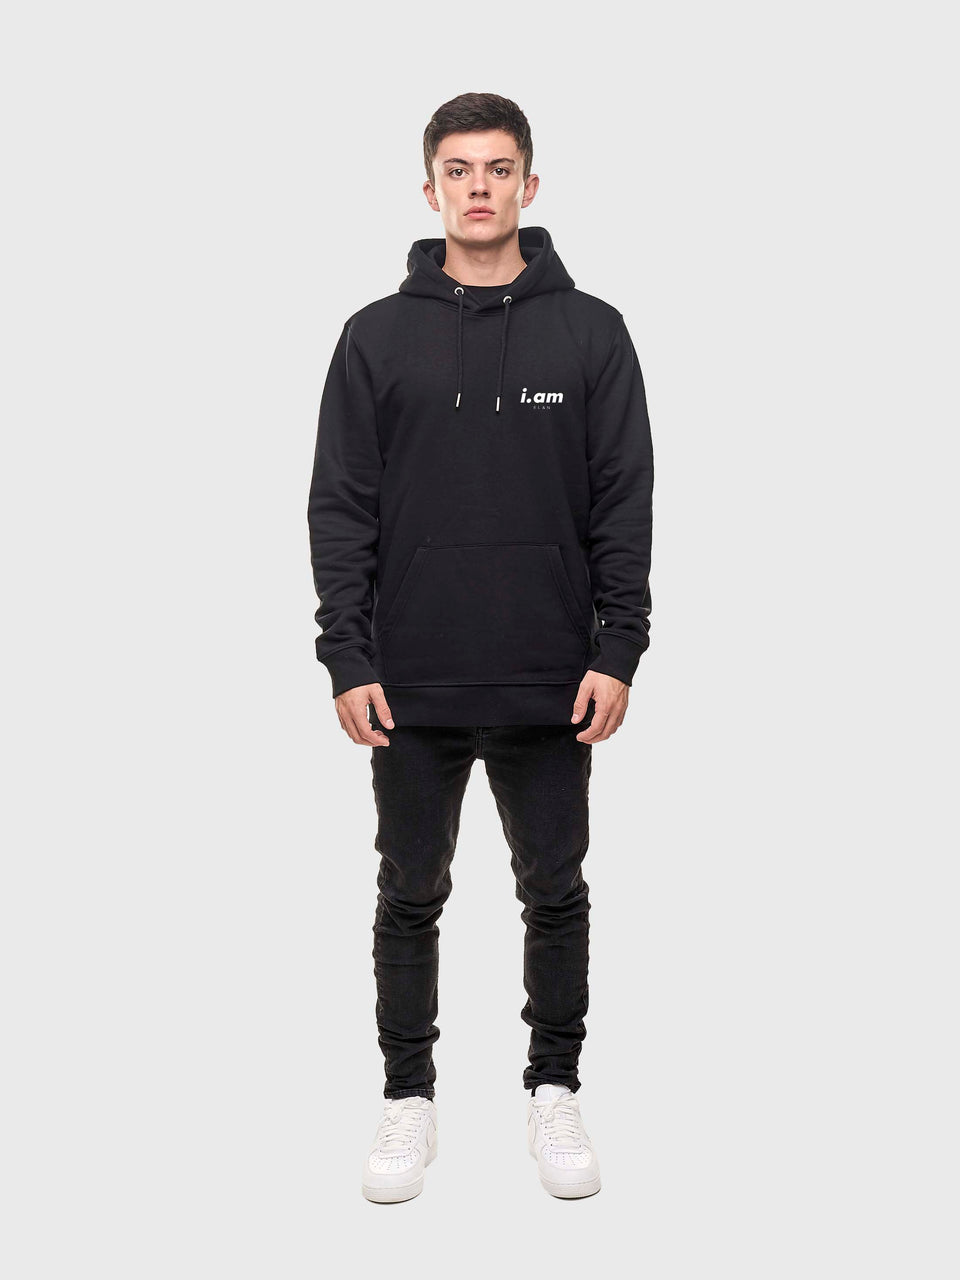 Power - Black - Unisex pull over hoodie